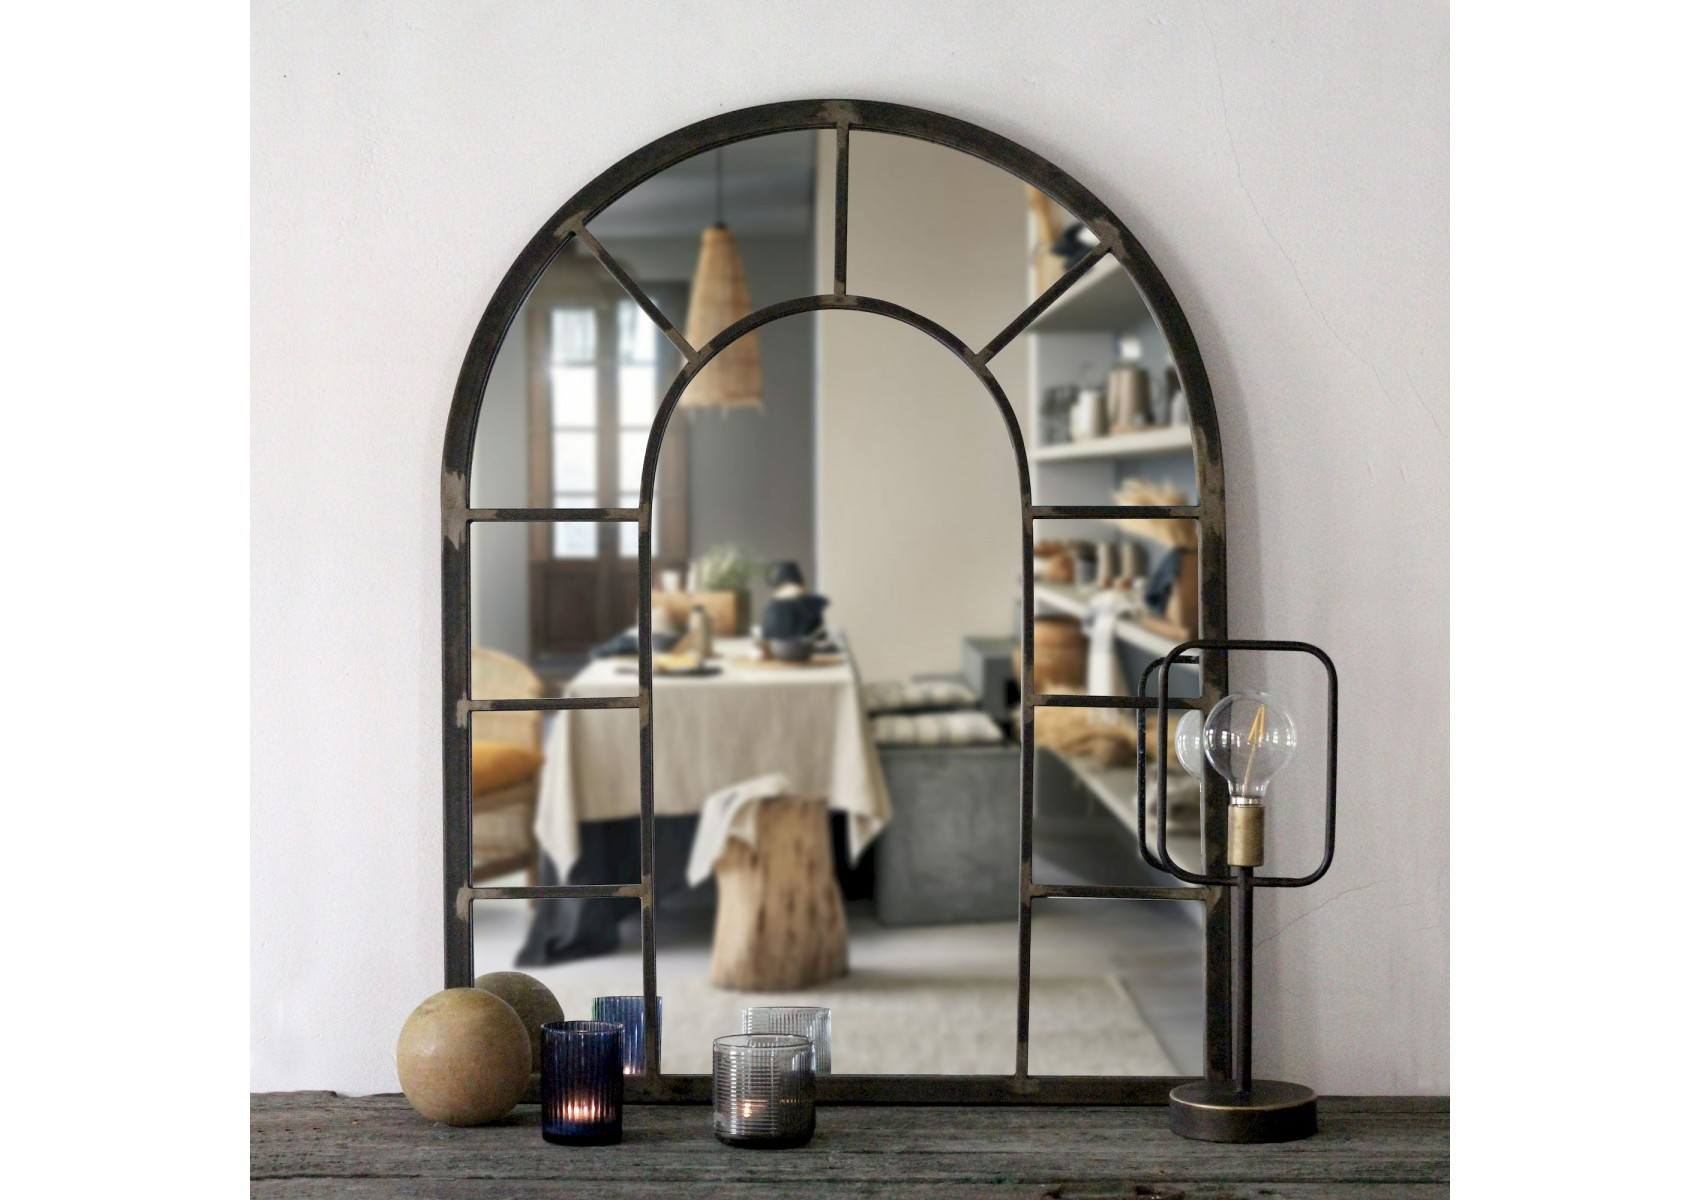 miroir mural rivoli imitation verri re m tal naturel. Black Bedroom Furniture Sets. Home Design Ideas